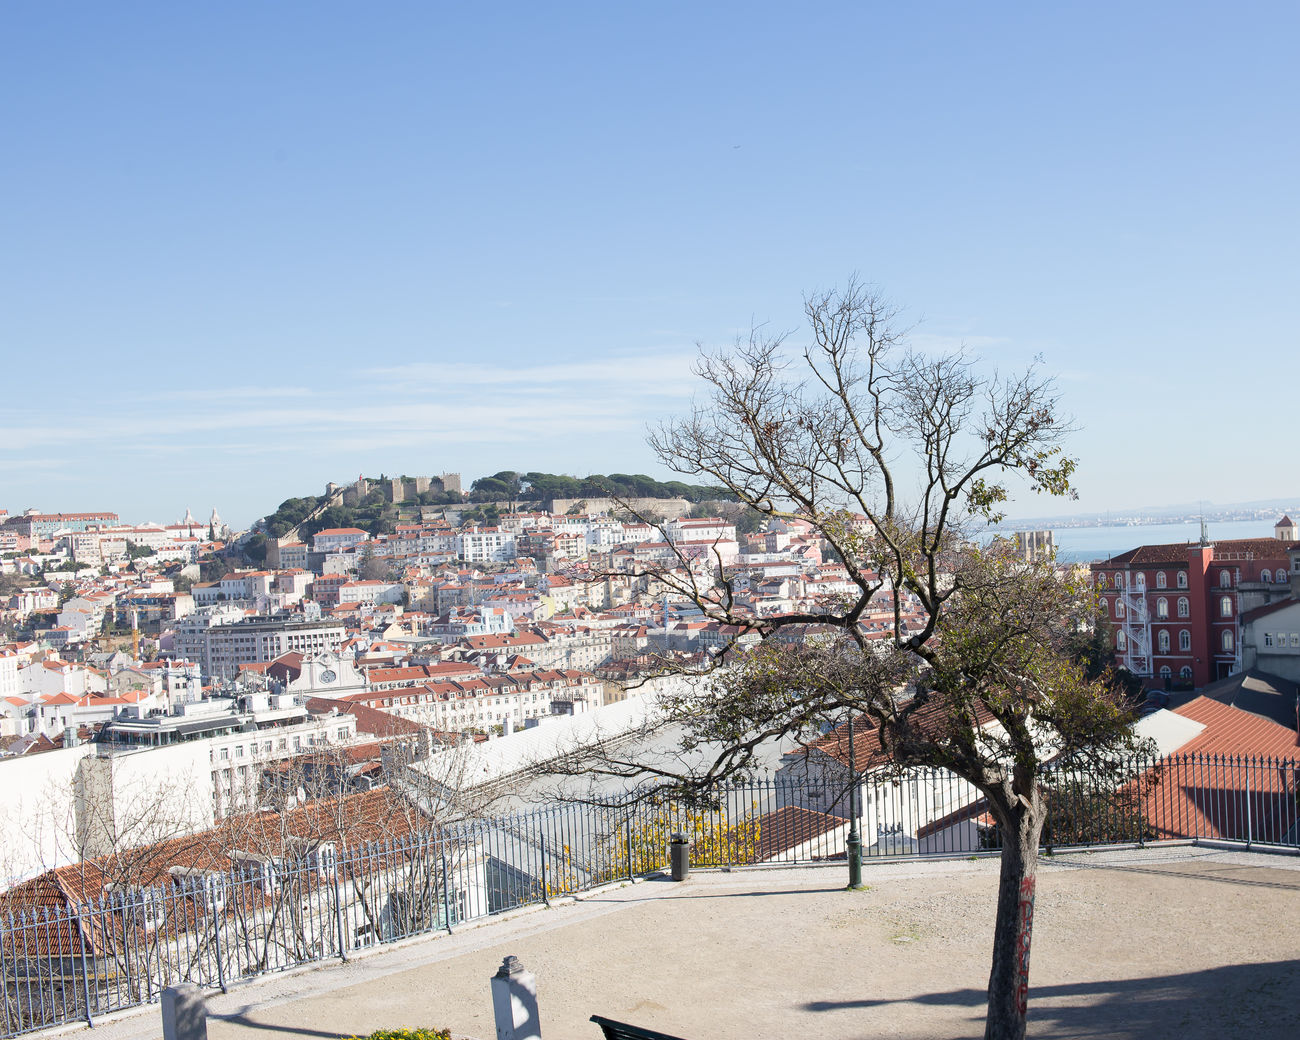 beautiful portugal Architecture Building Exterior City Cityscape Clear Sky Day No People Outdoors Sky Sunlight Travel Destinations Tree